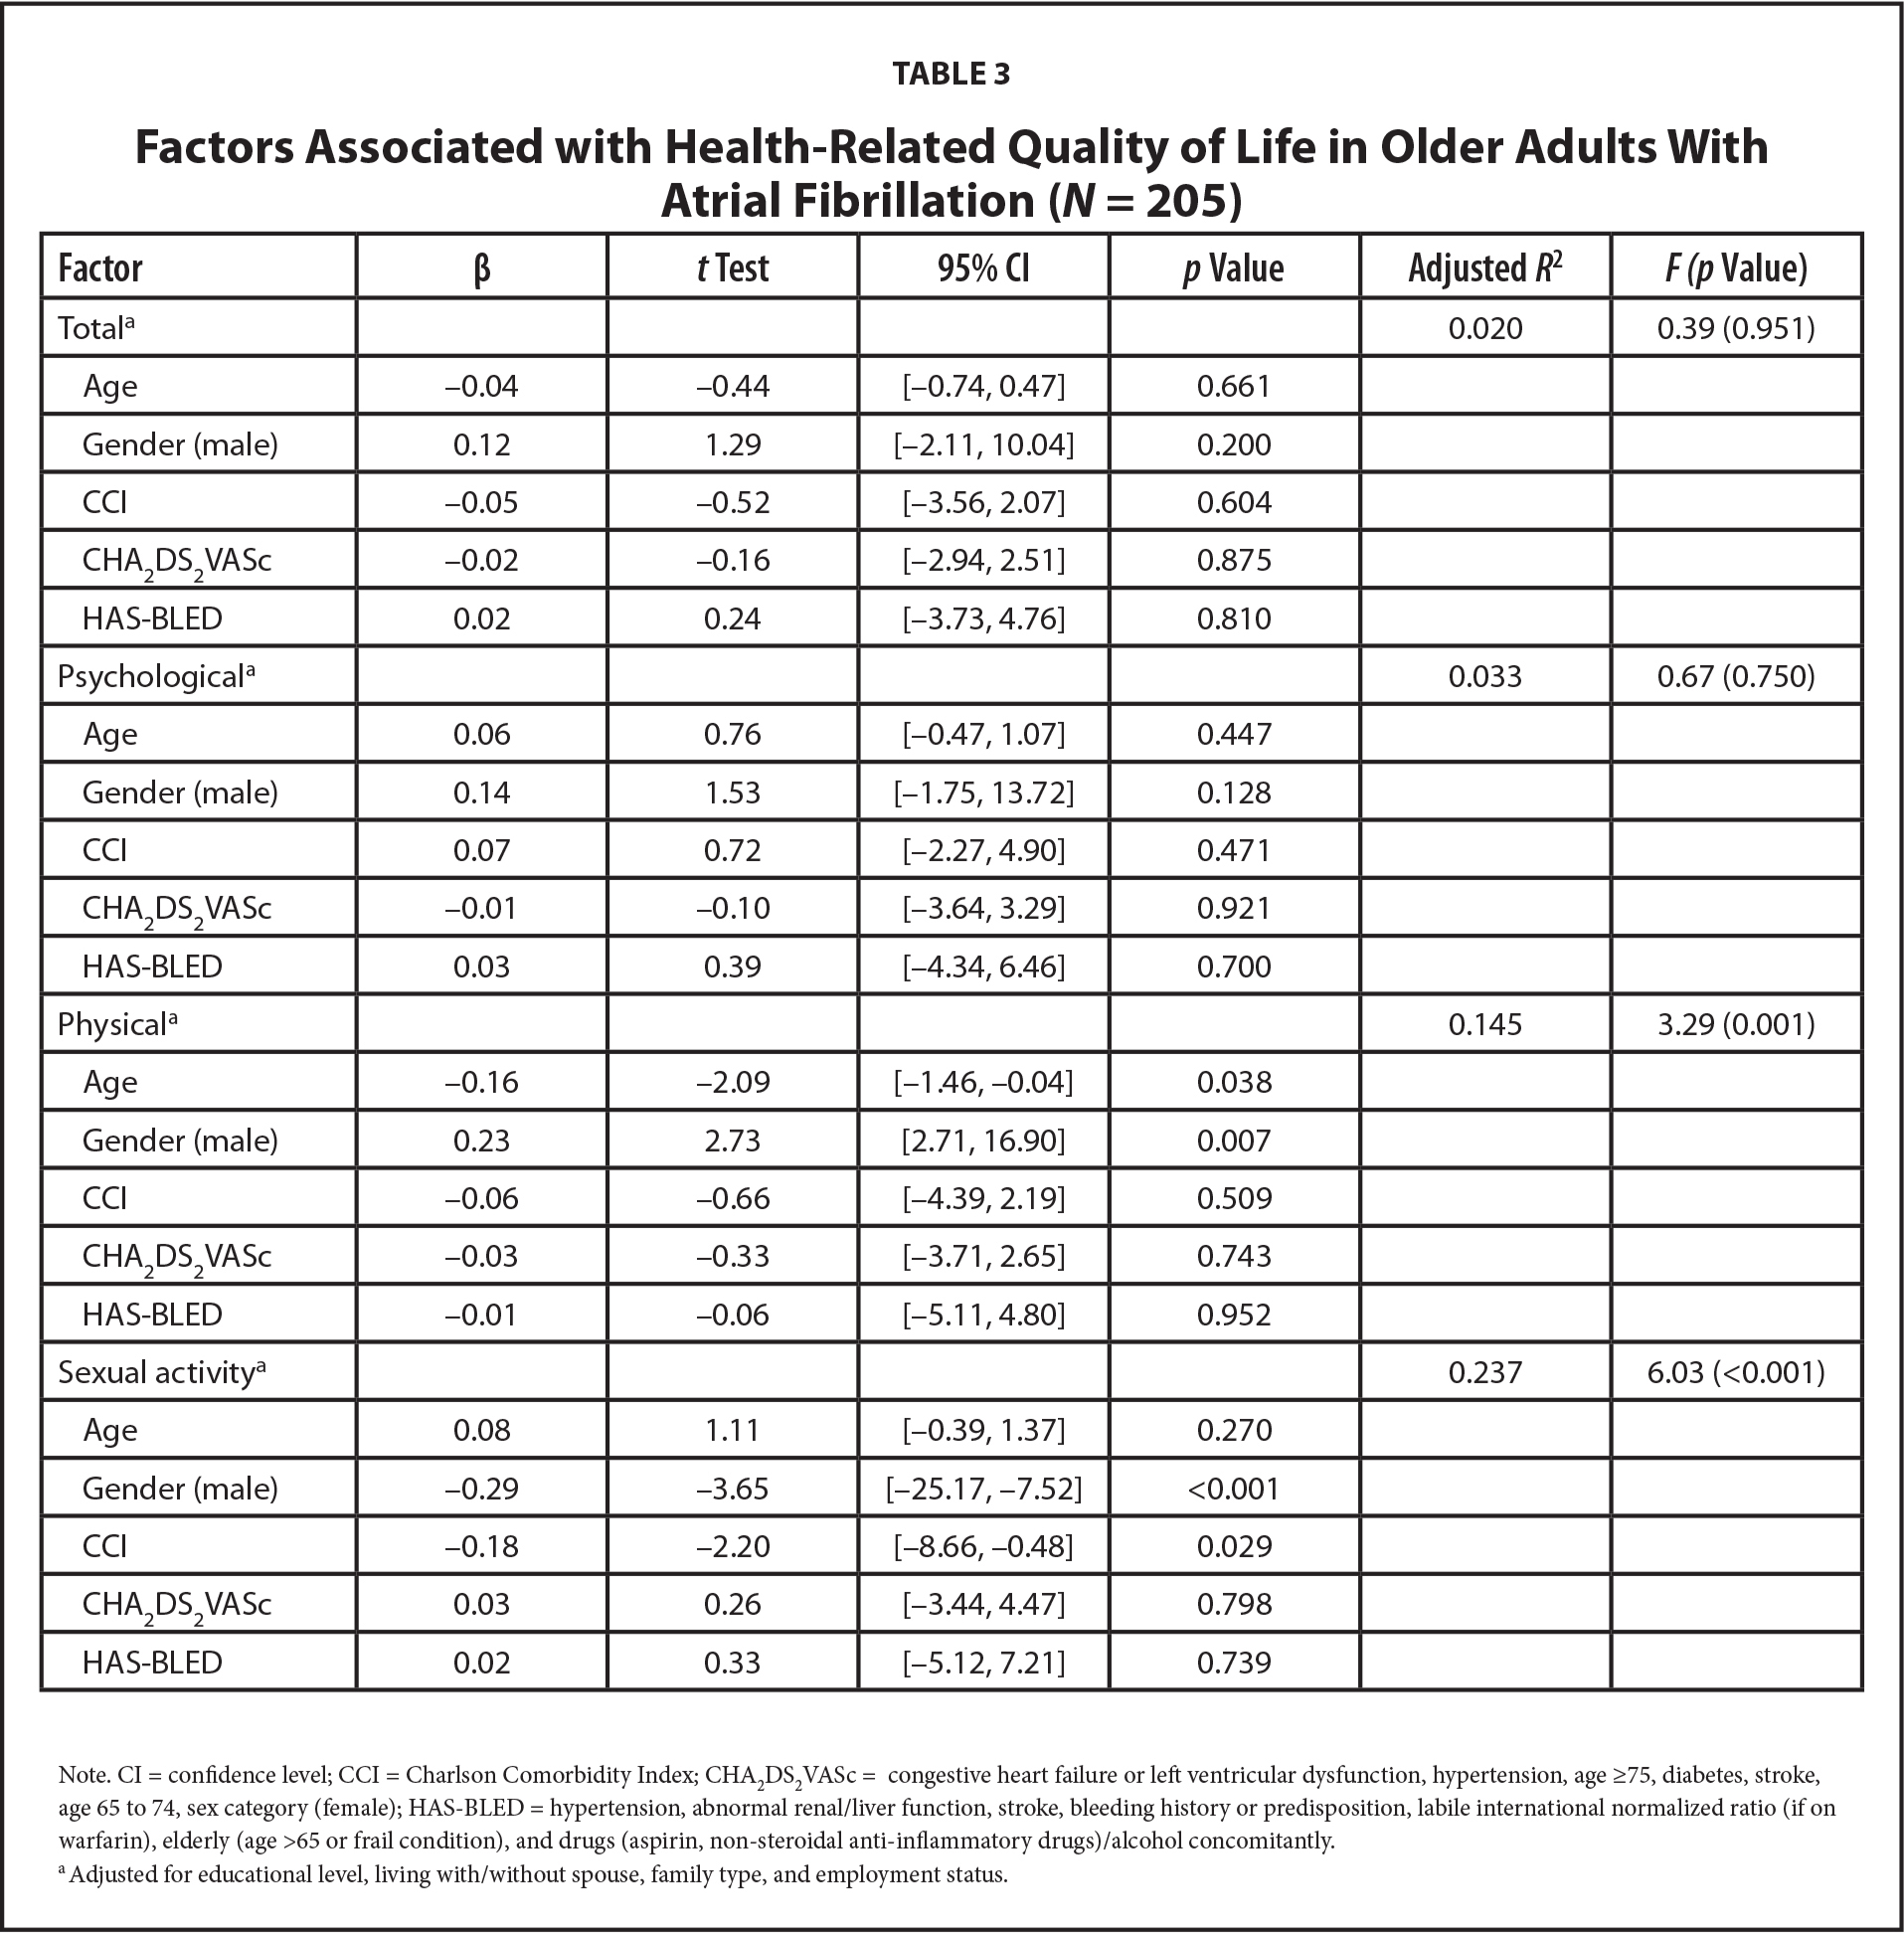 Factors Associated with Health-Related Quality of Life in Older Adults With Atrial Fibrillation (N = 205)